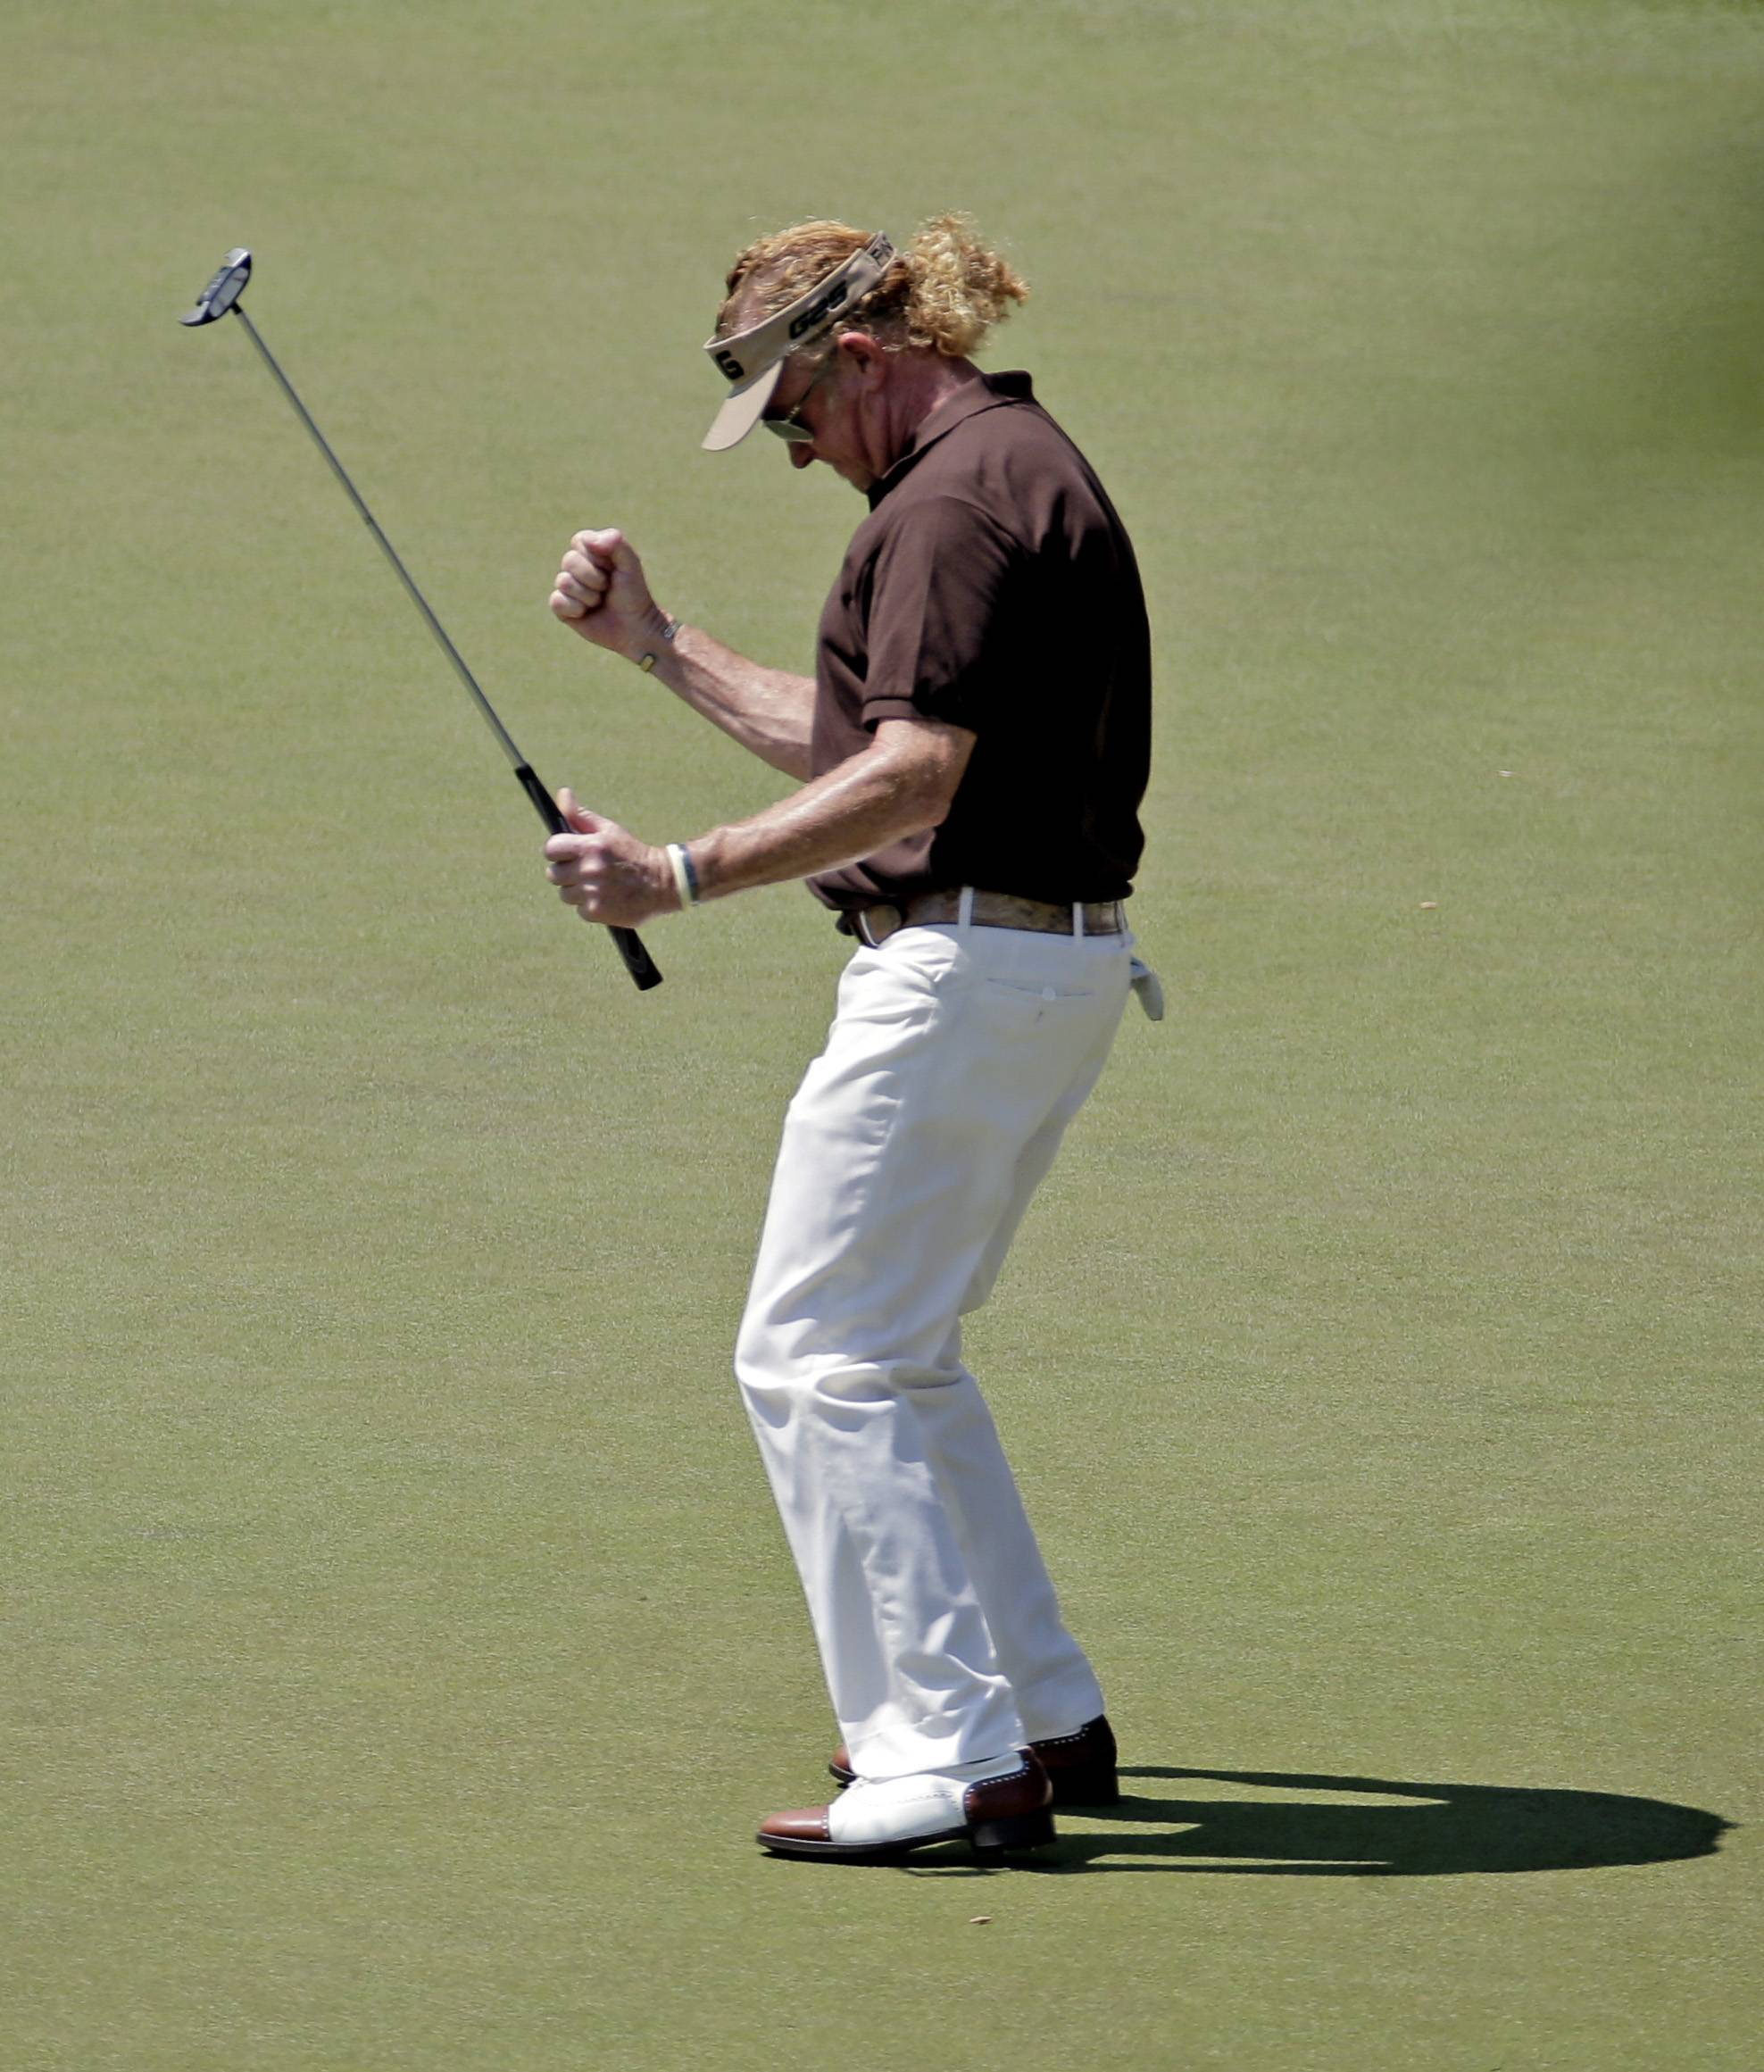 Miguel Angel Jimenez, of Spain, pumps his fist after a birdie on the 16th hole during the third round of the Masters golf tournament Saturday, April 12, 2014, in Augusta, Ga.